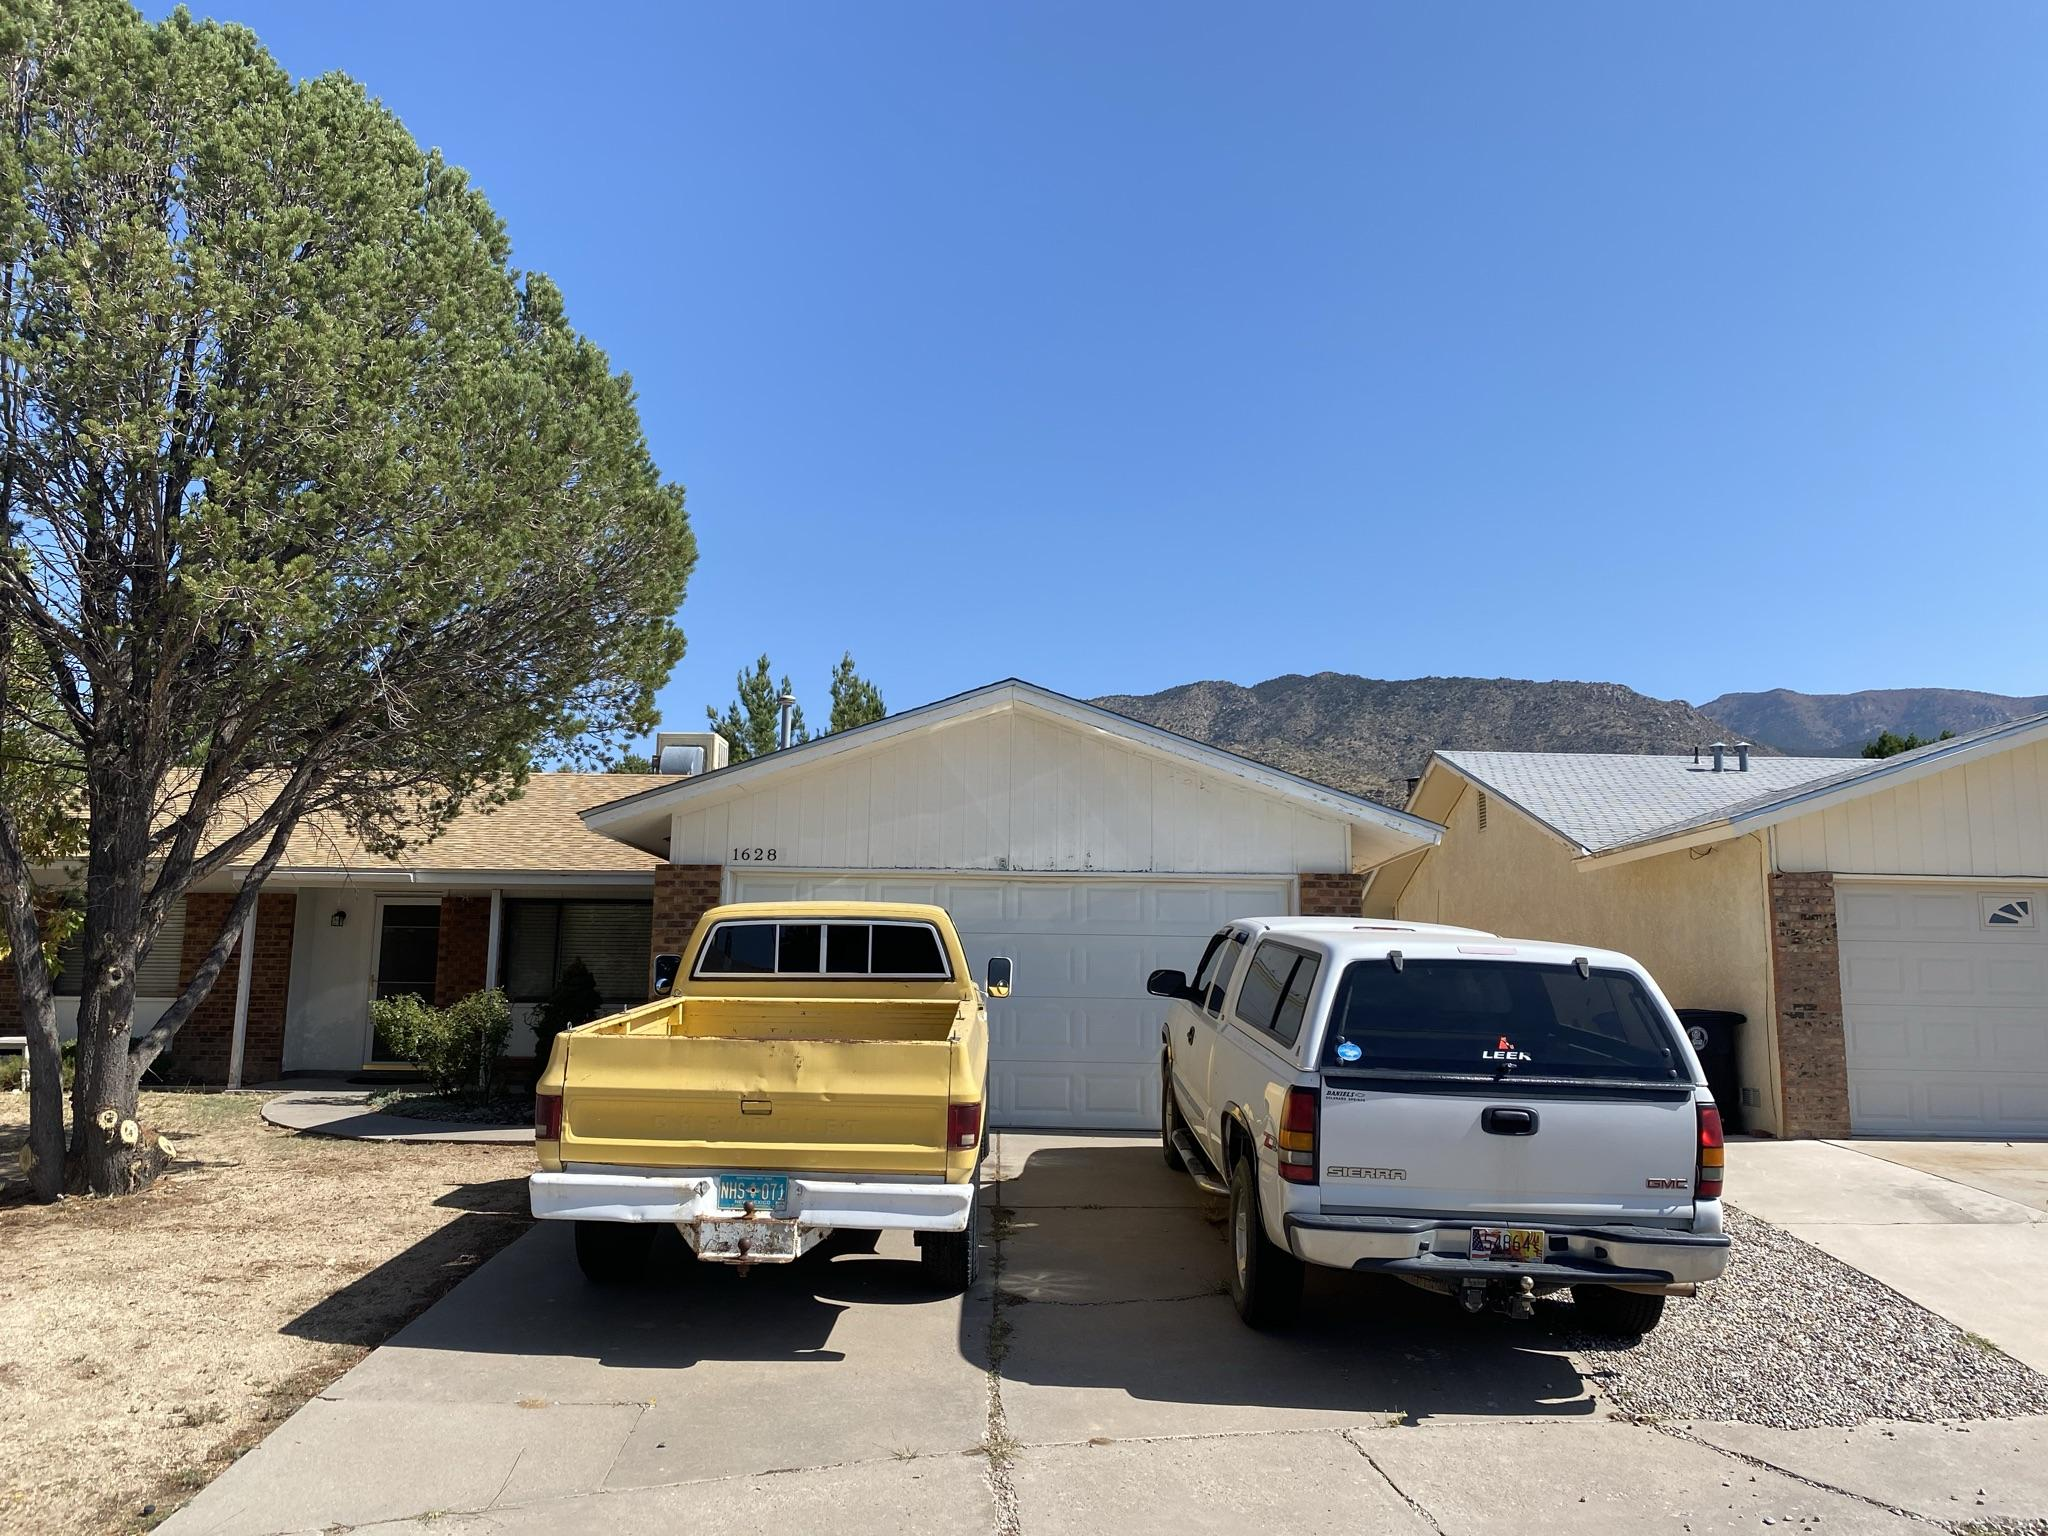 Great home Great location!! In a cul-de-sac in a quiet neighborhood. Nice mountain views from backyard. 3 large bedrooms. Nice fireplace in the family room. Big backyard. Must see this one. Refrigerator washer and dryer convey. Other furniture negotiable.